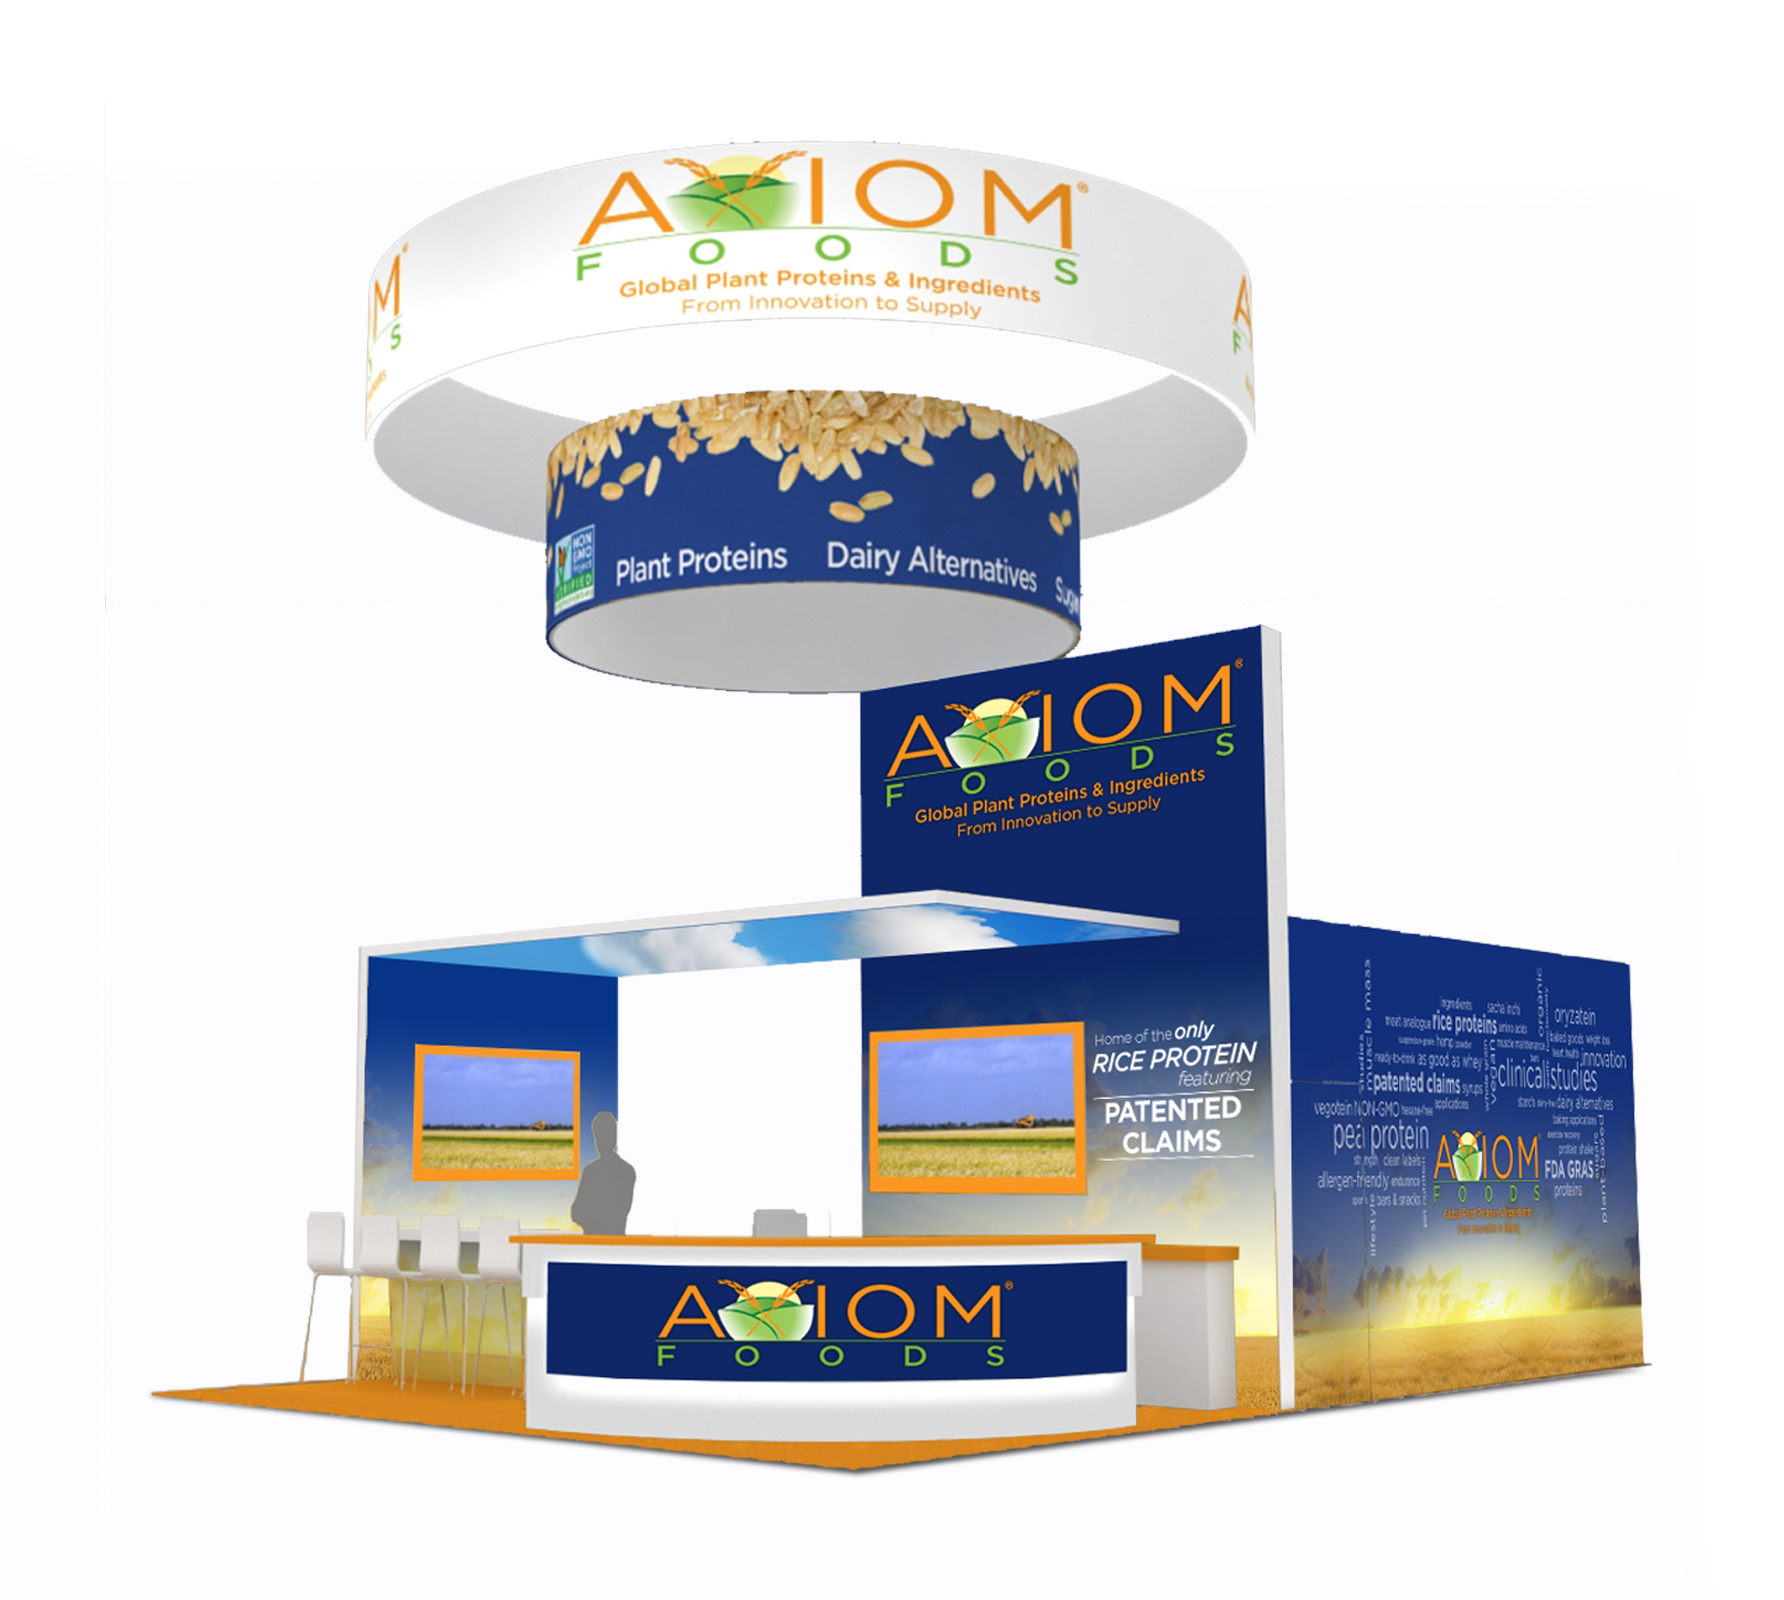 Professional tradeshow booth design